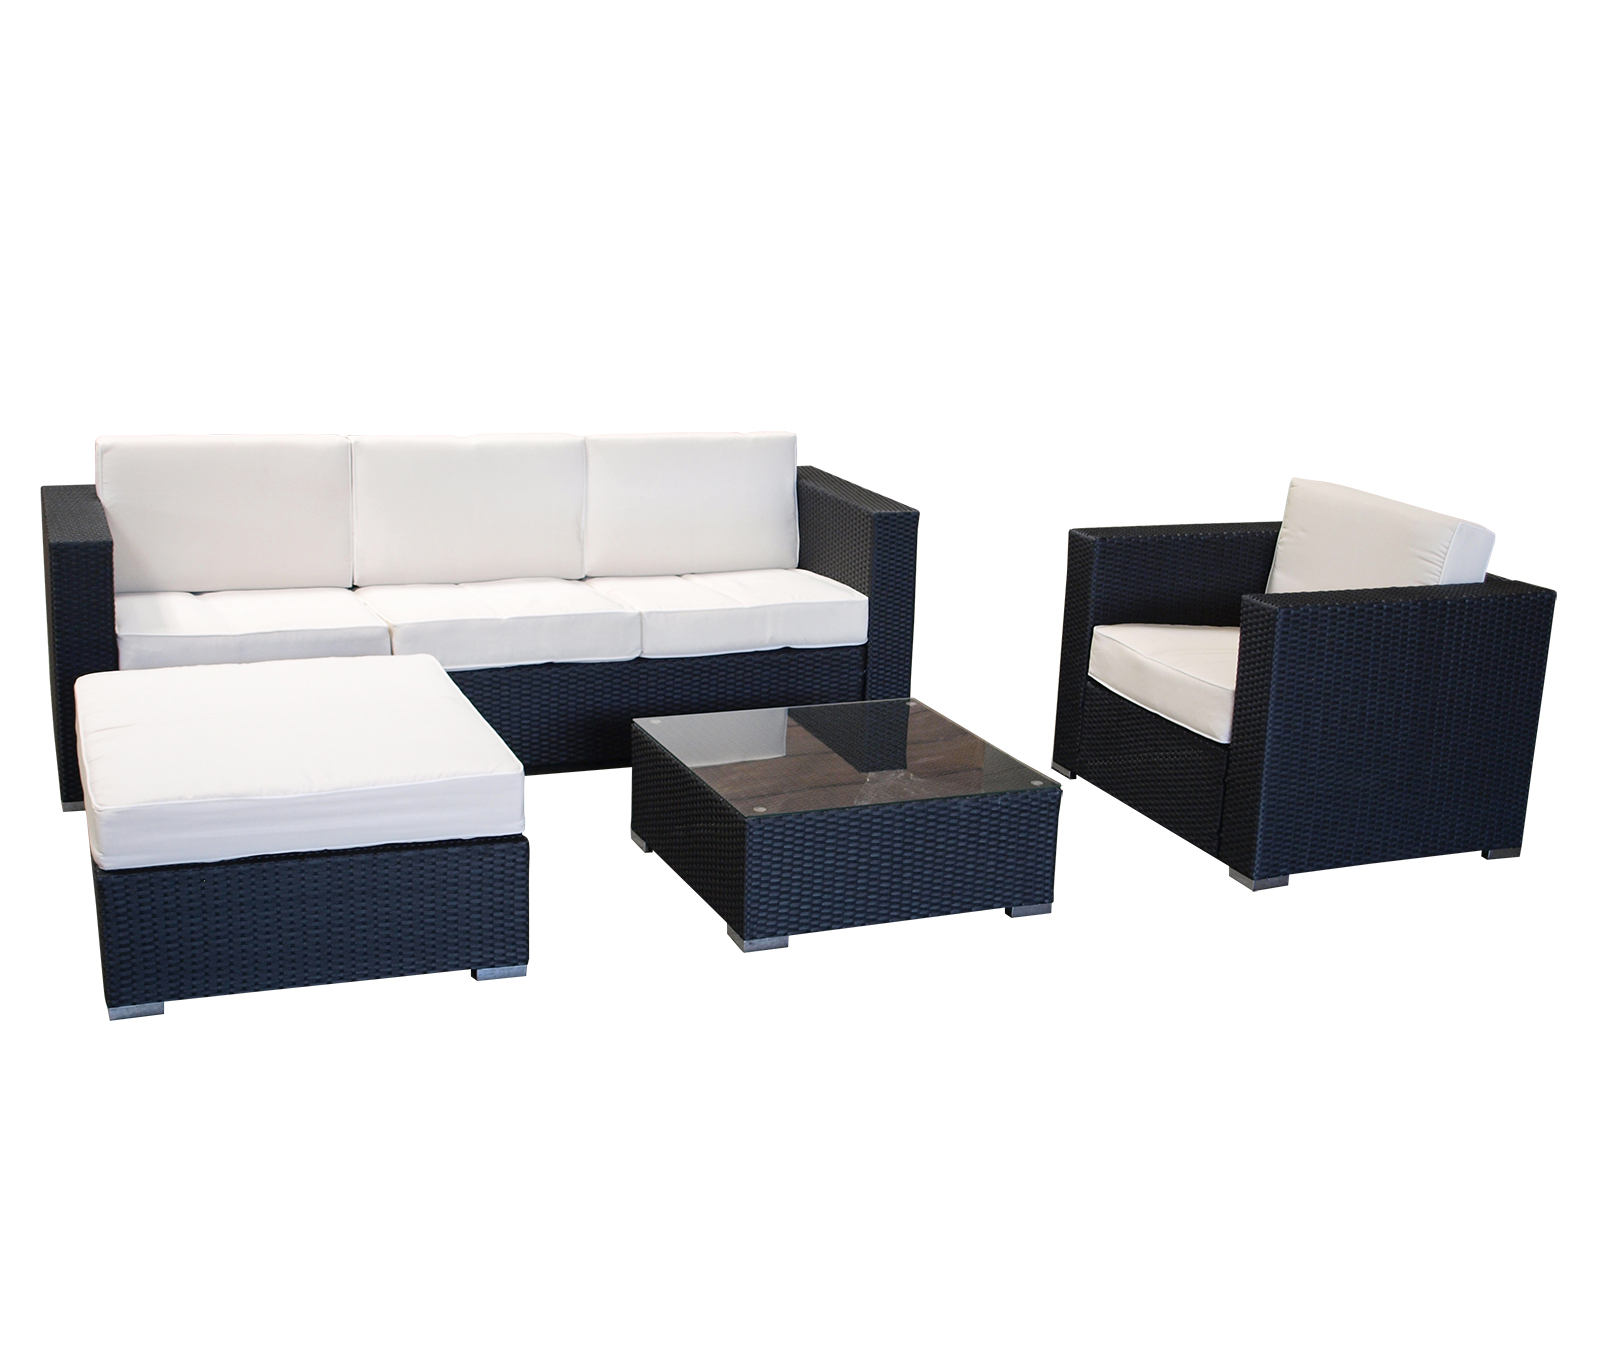 exclusive lounge gruppe loungeset livorno alu polyrattan grau mit polstern ebay. Black Bedroom Furniture Sets. Home Design Ideas